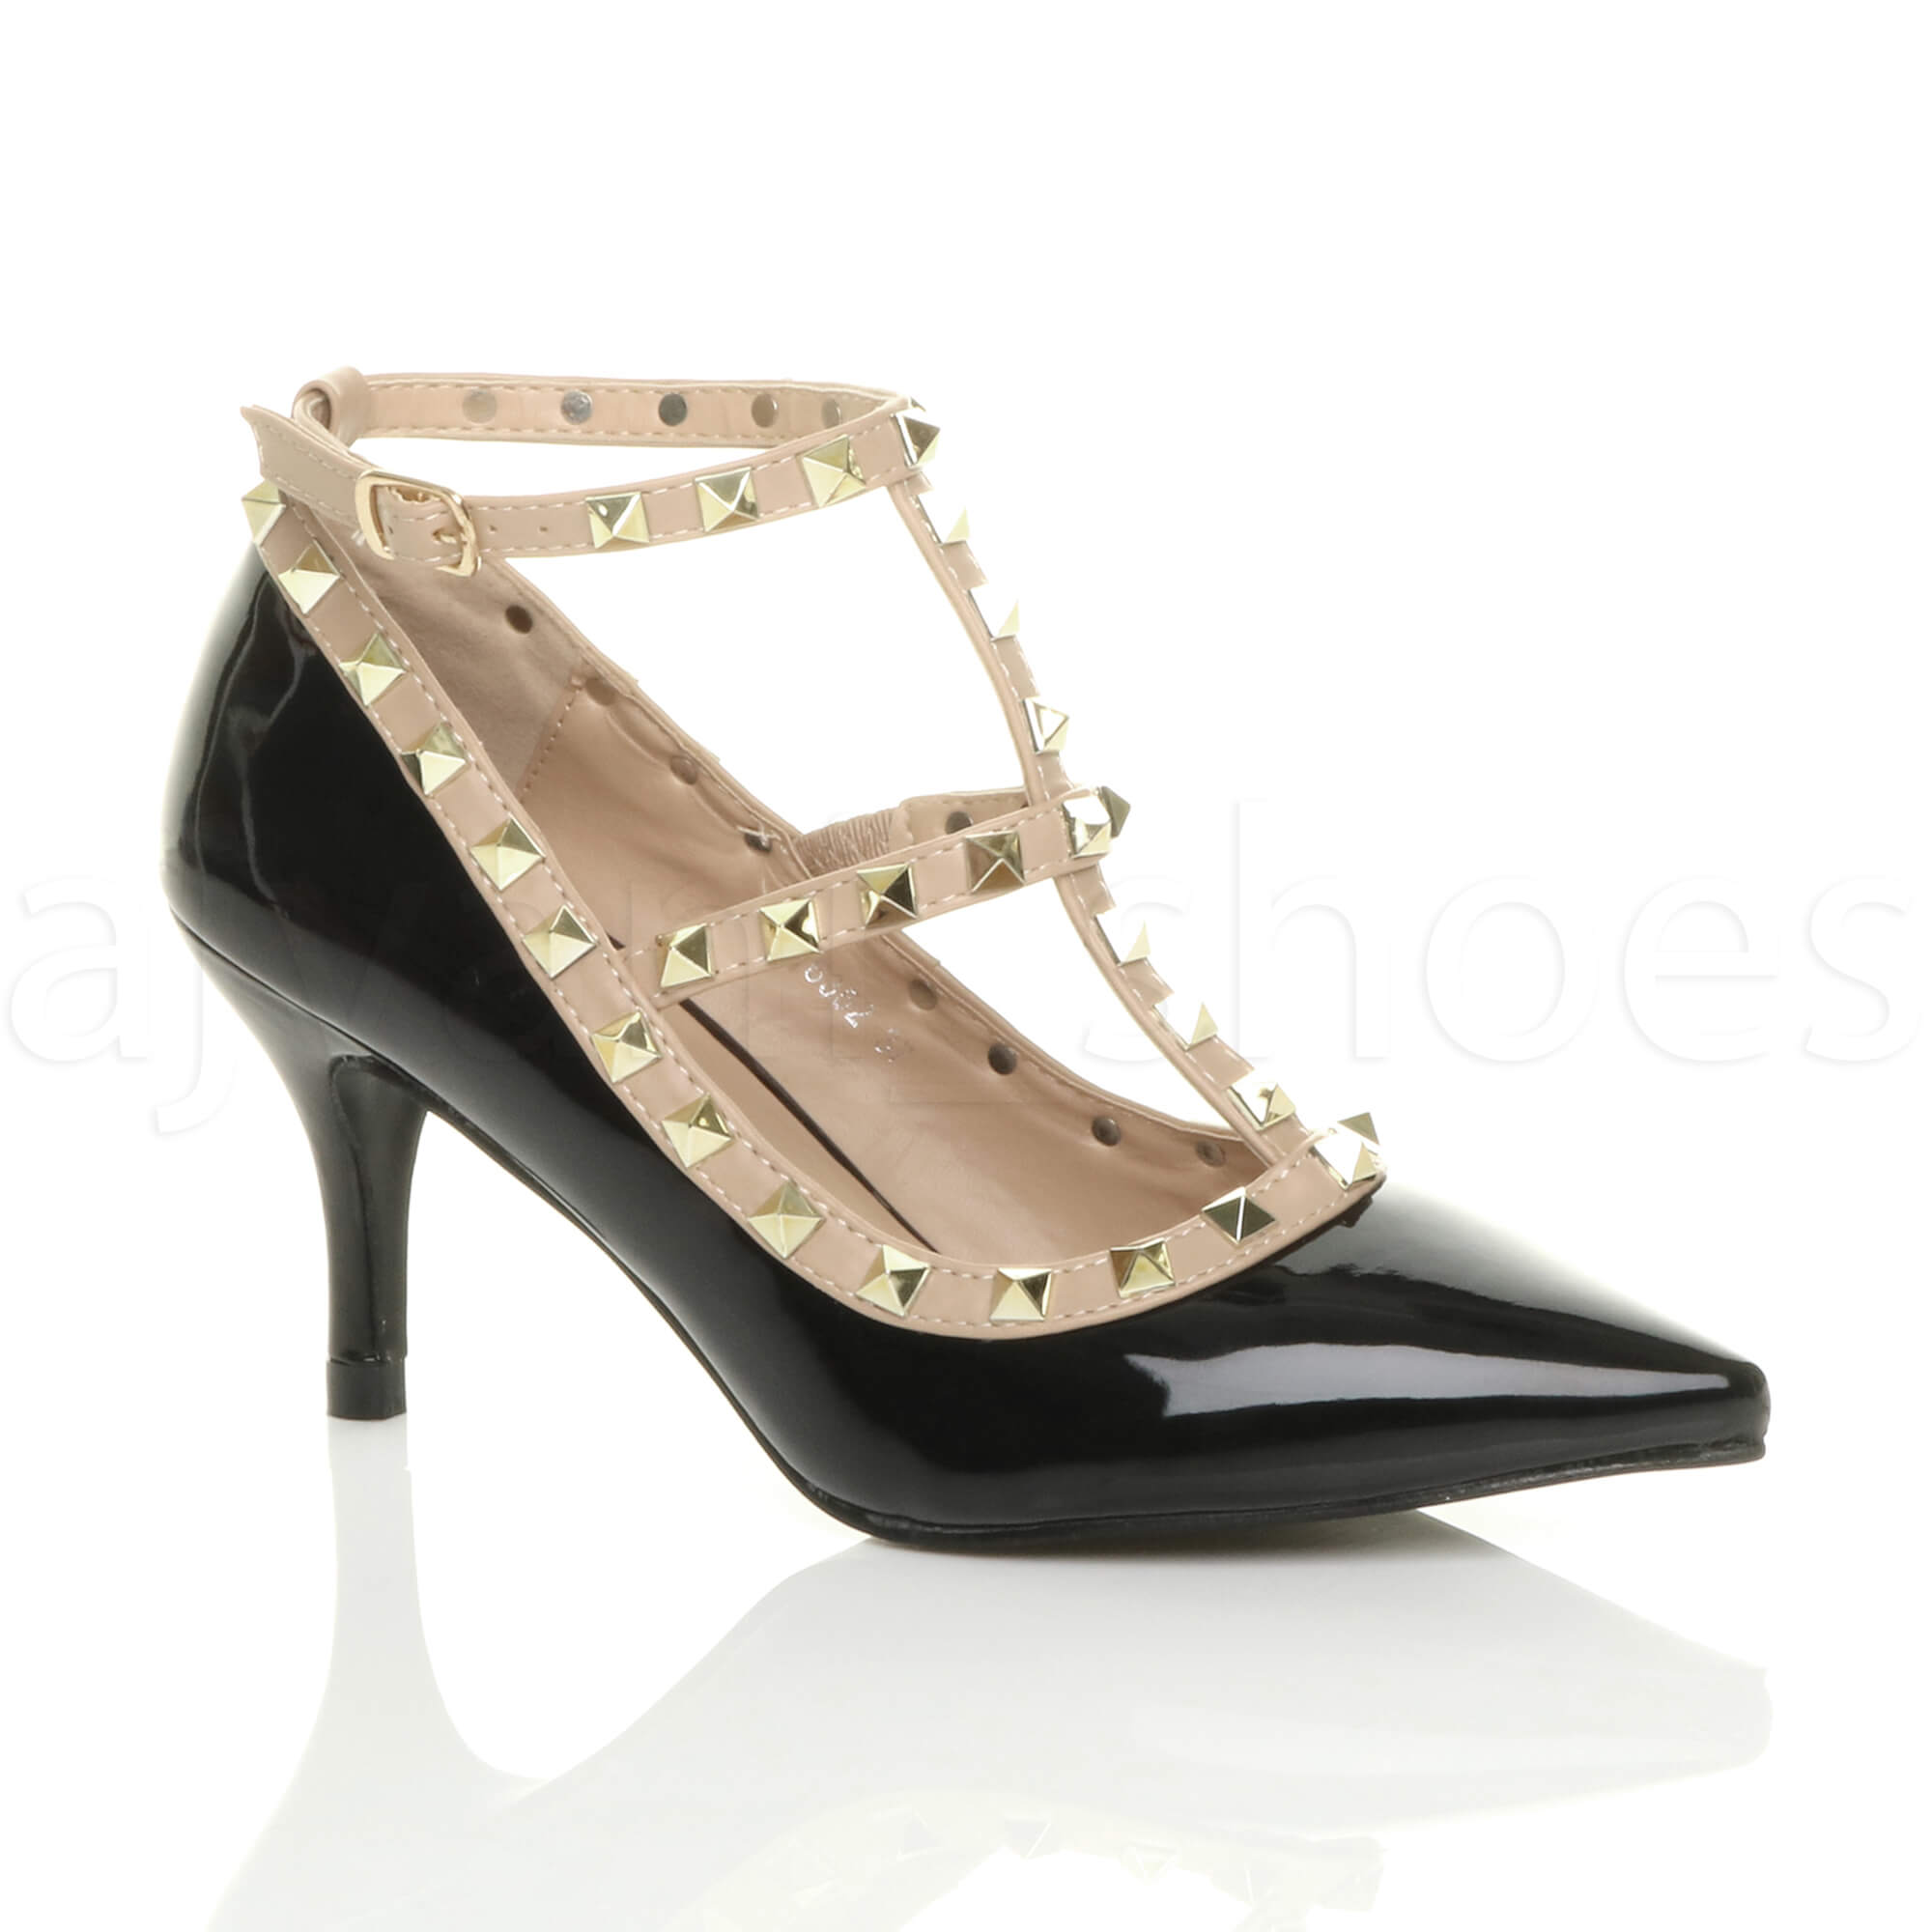 f059505d07ec Details about WOMENS LADIES MID HIGH HEEL T-BAR PUNK ROCK STUDDED POINTED  COURT SHOES SIZE